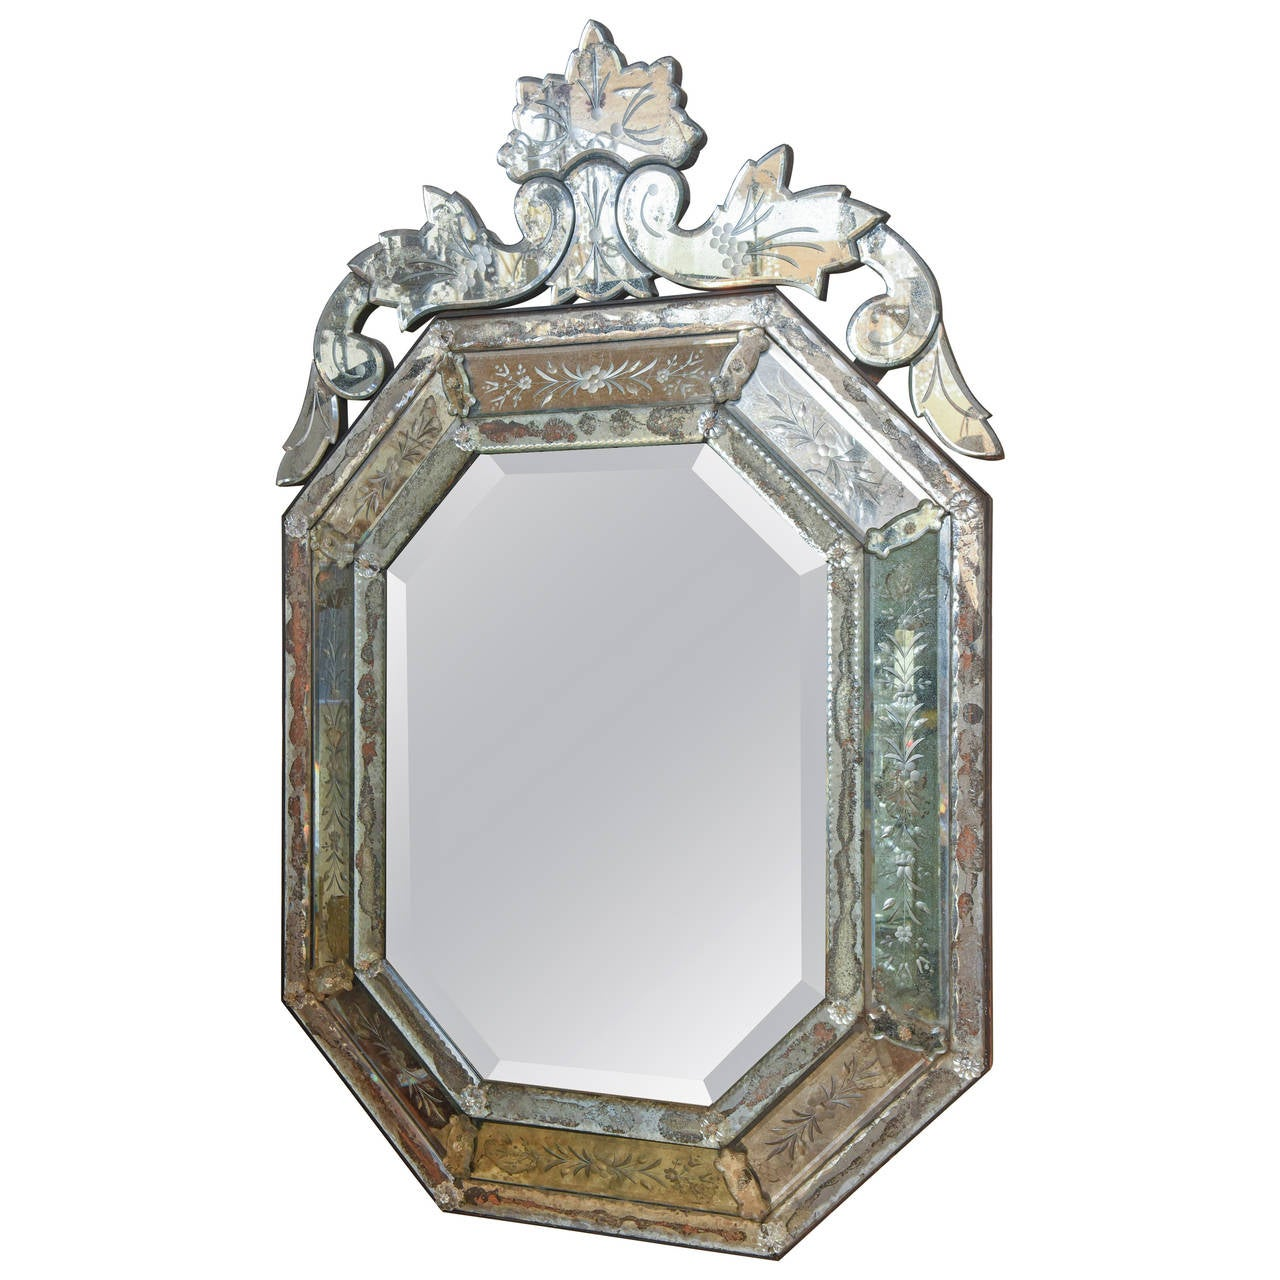 Octagonal etched venetian mirror for sale at 1stdibs for Mirrors for sale